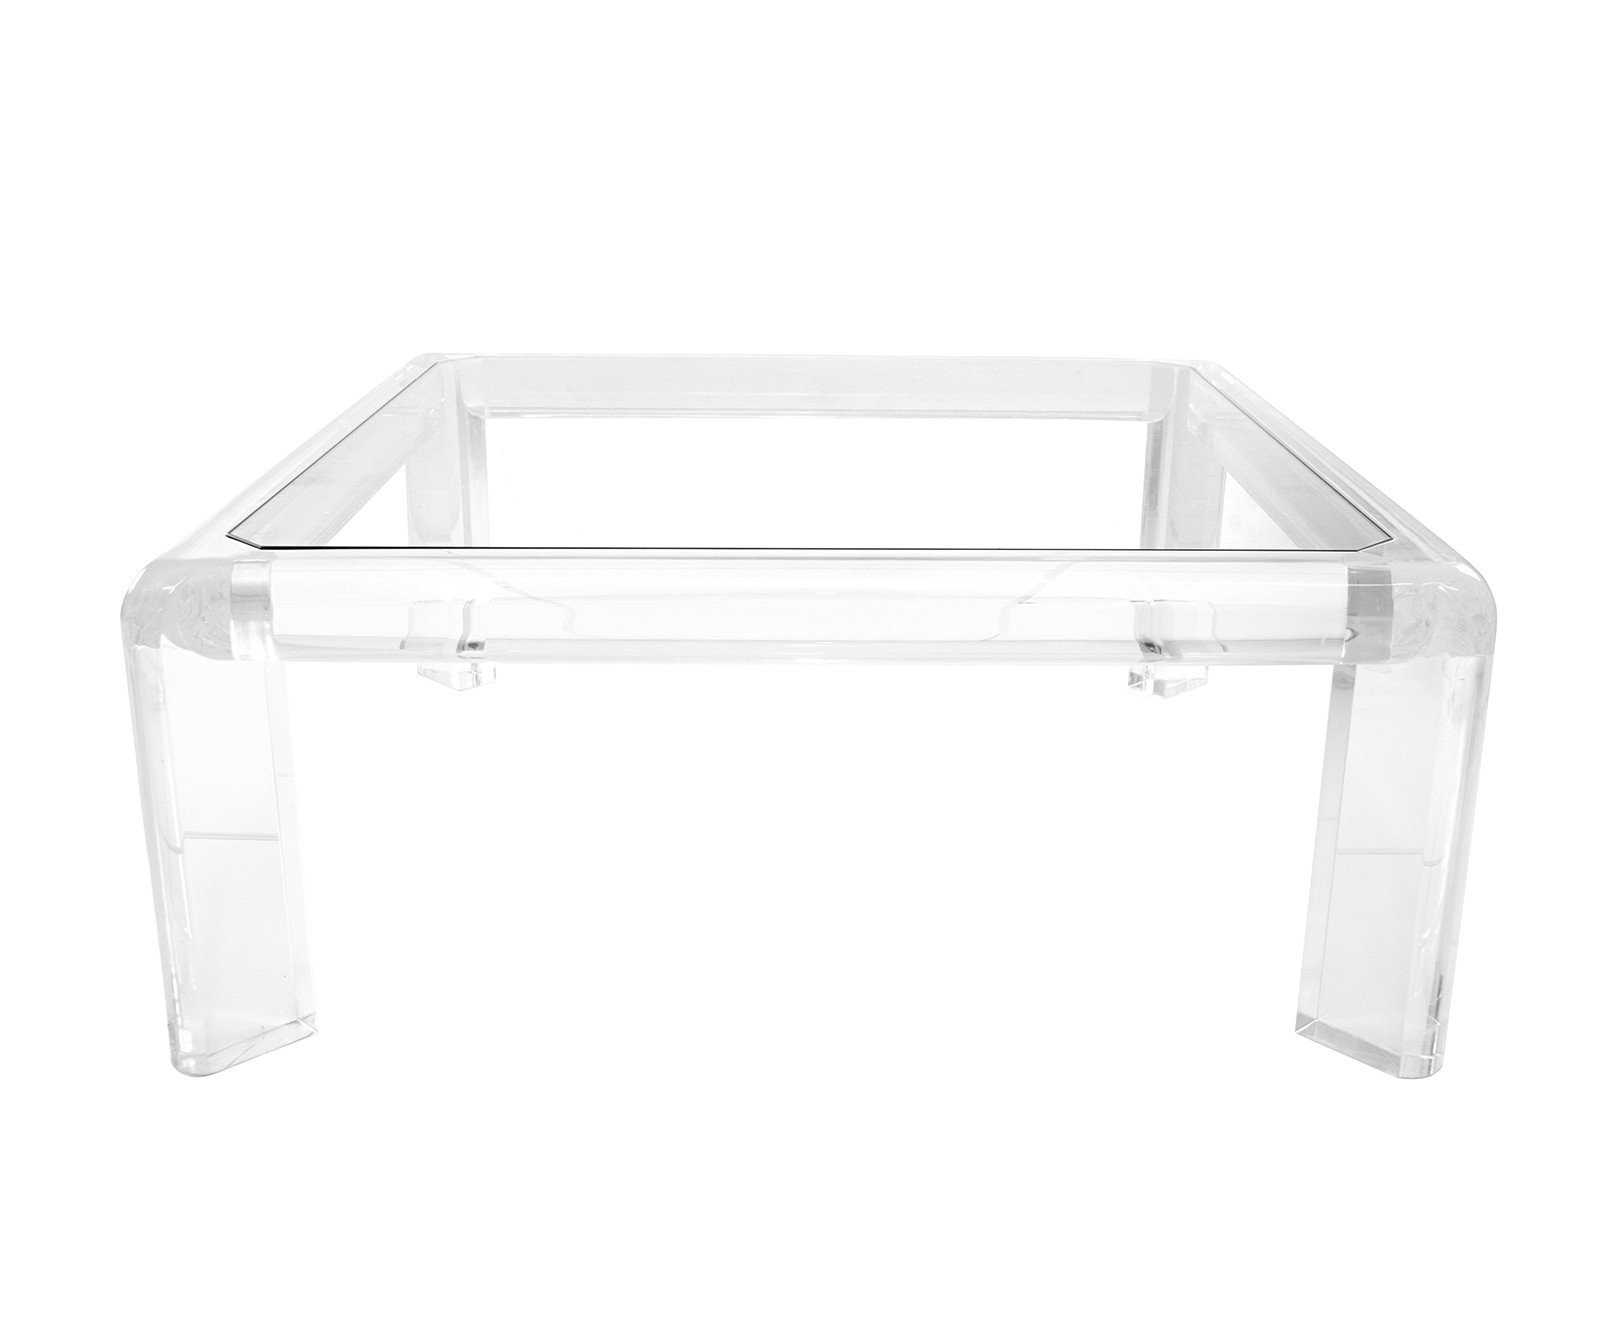 Acrylic Coffee Tables Square Table - Tadalafilcanada with regard to Modern Acrylic Coffee Tables (Image 5 of 30)